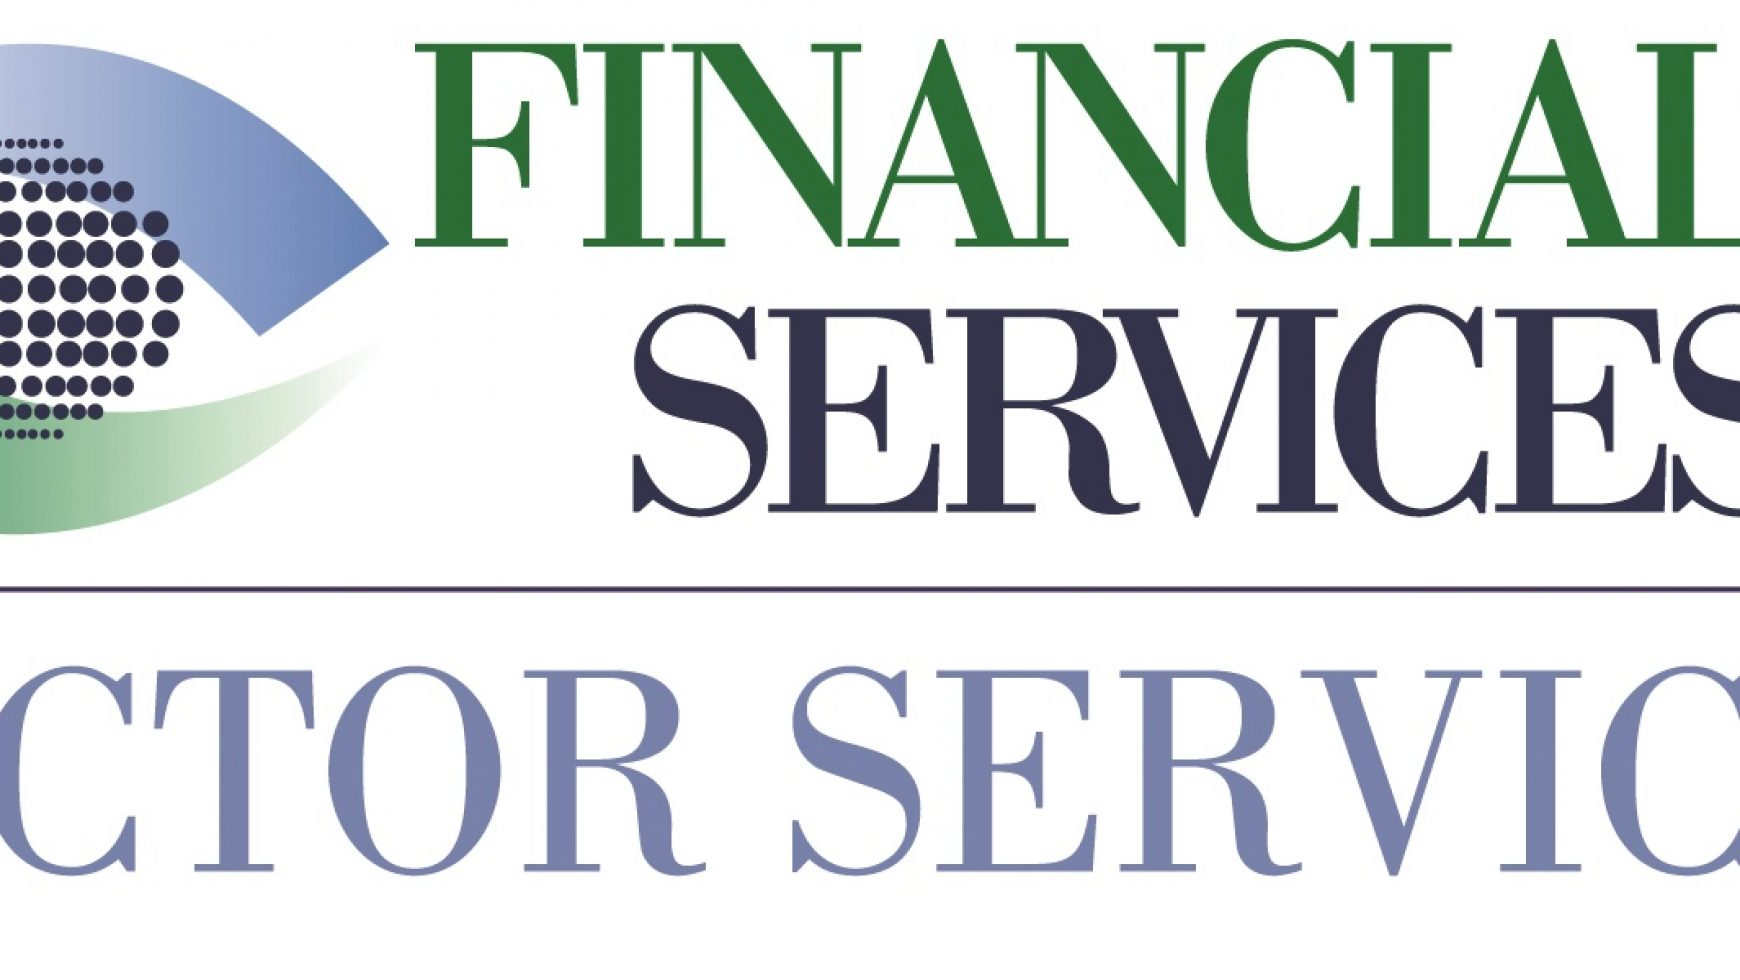 FS-ISAC Sector Services